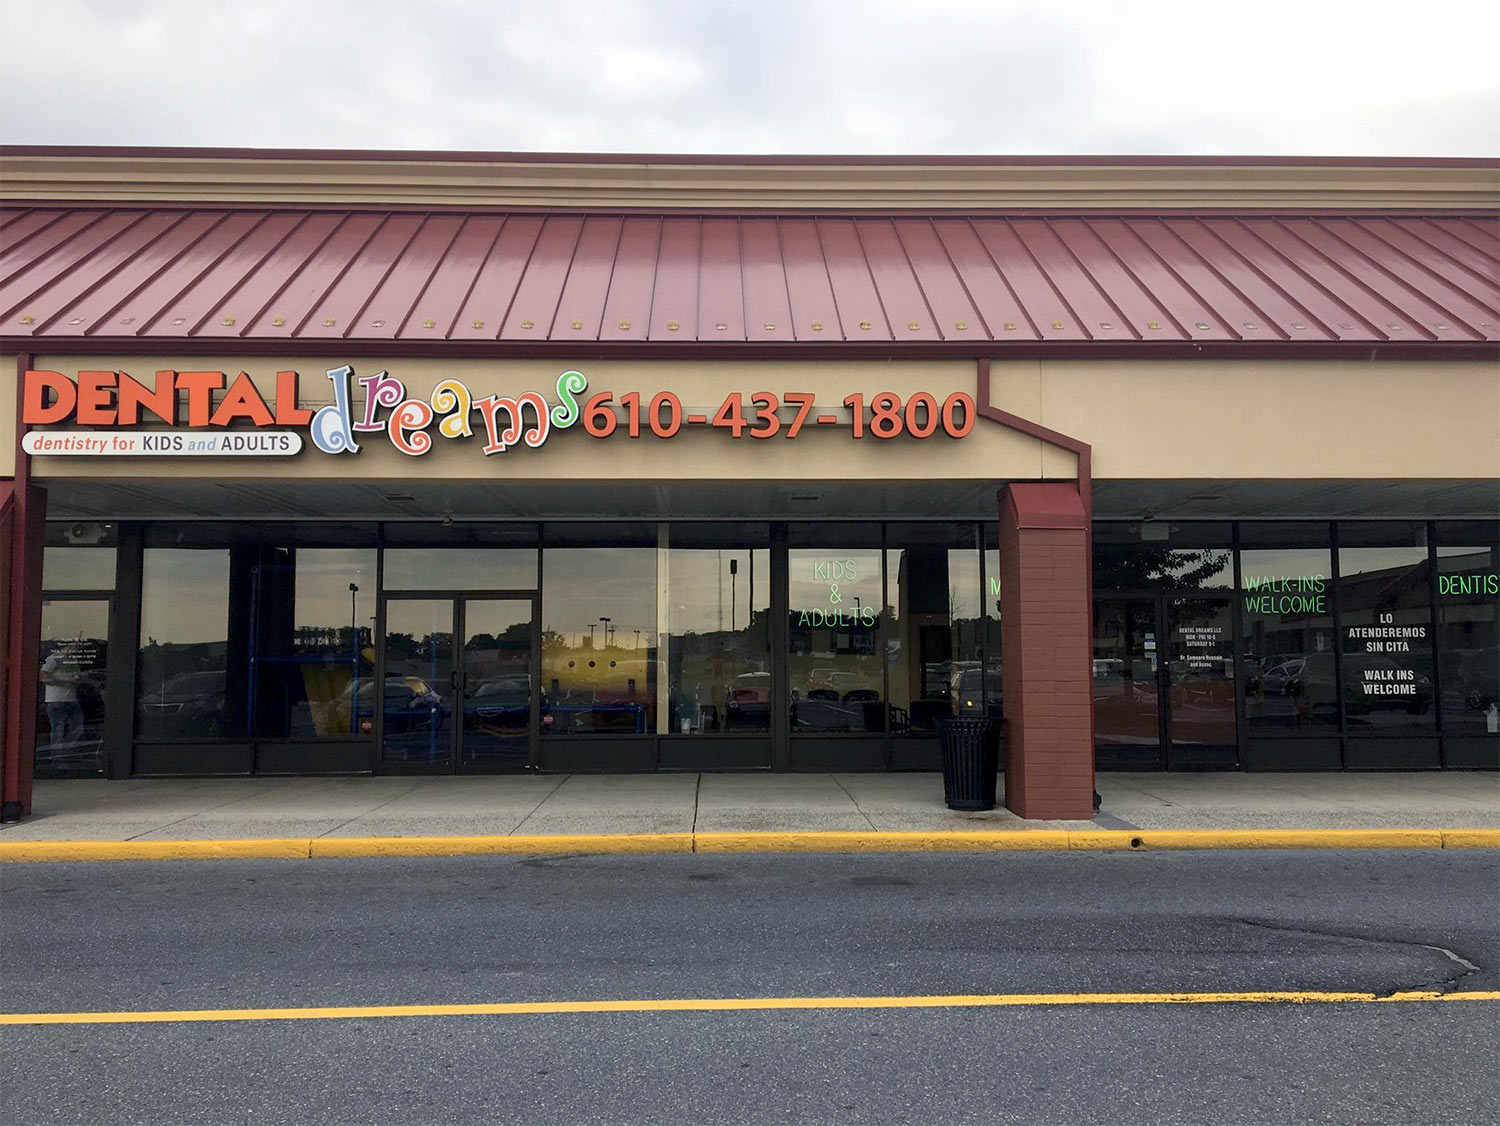 Photo of Dental Dreams - MacArthur Rd in Whitehall, PA 18052